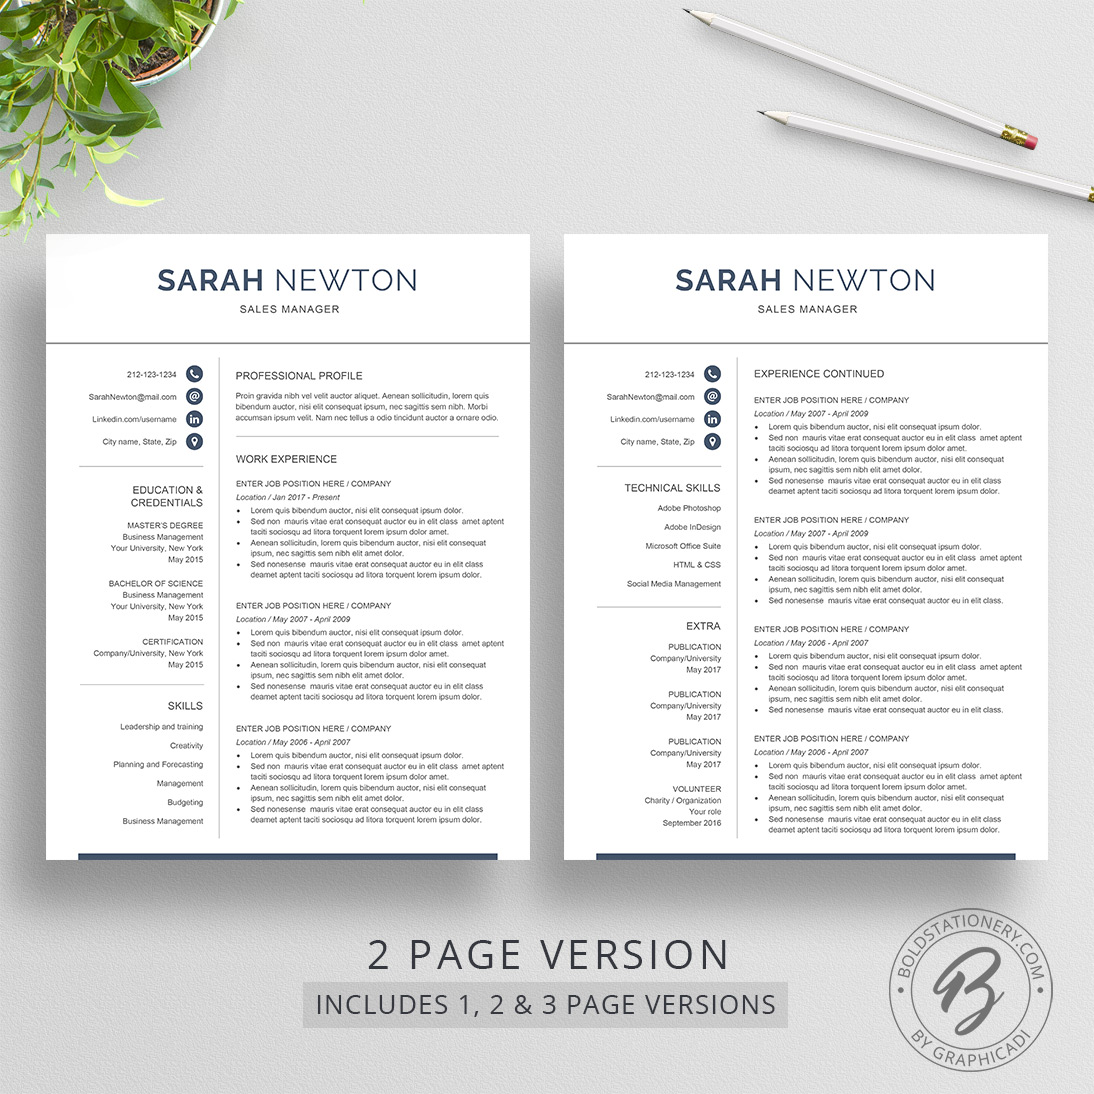 1 2 and 3 page resume template - 2 Page Resume Template